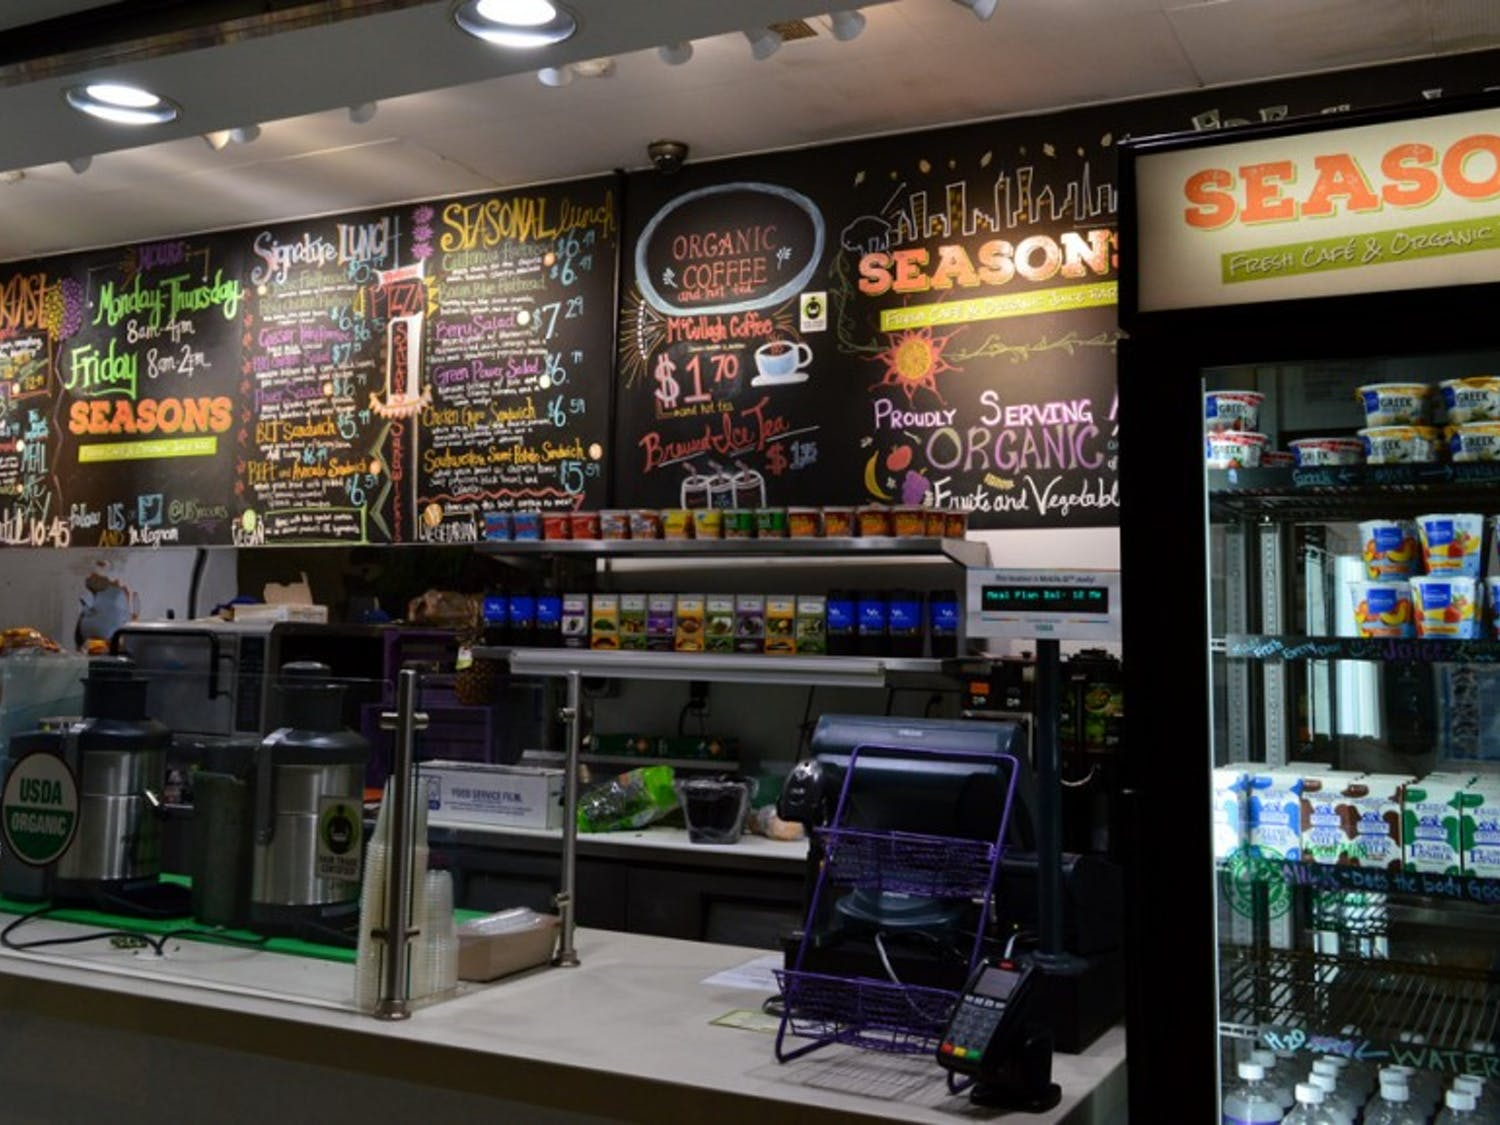 Seasons is a new café and organic juice bar in the Center for the Arts. The menu includes freshly blended juices and light breakfast options. It is one of many additions and upgrades Campus Dining & Shops has made in a $3.5 million renovation over the summer.